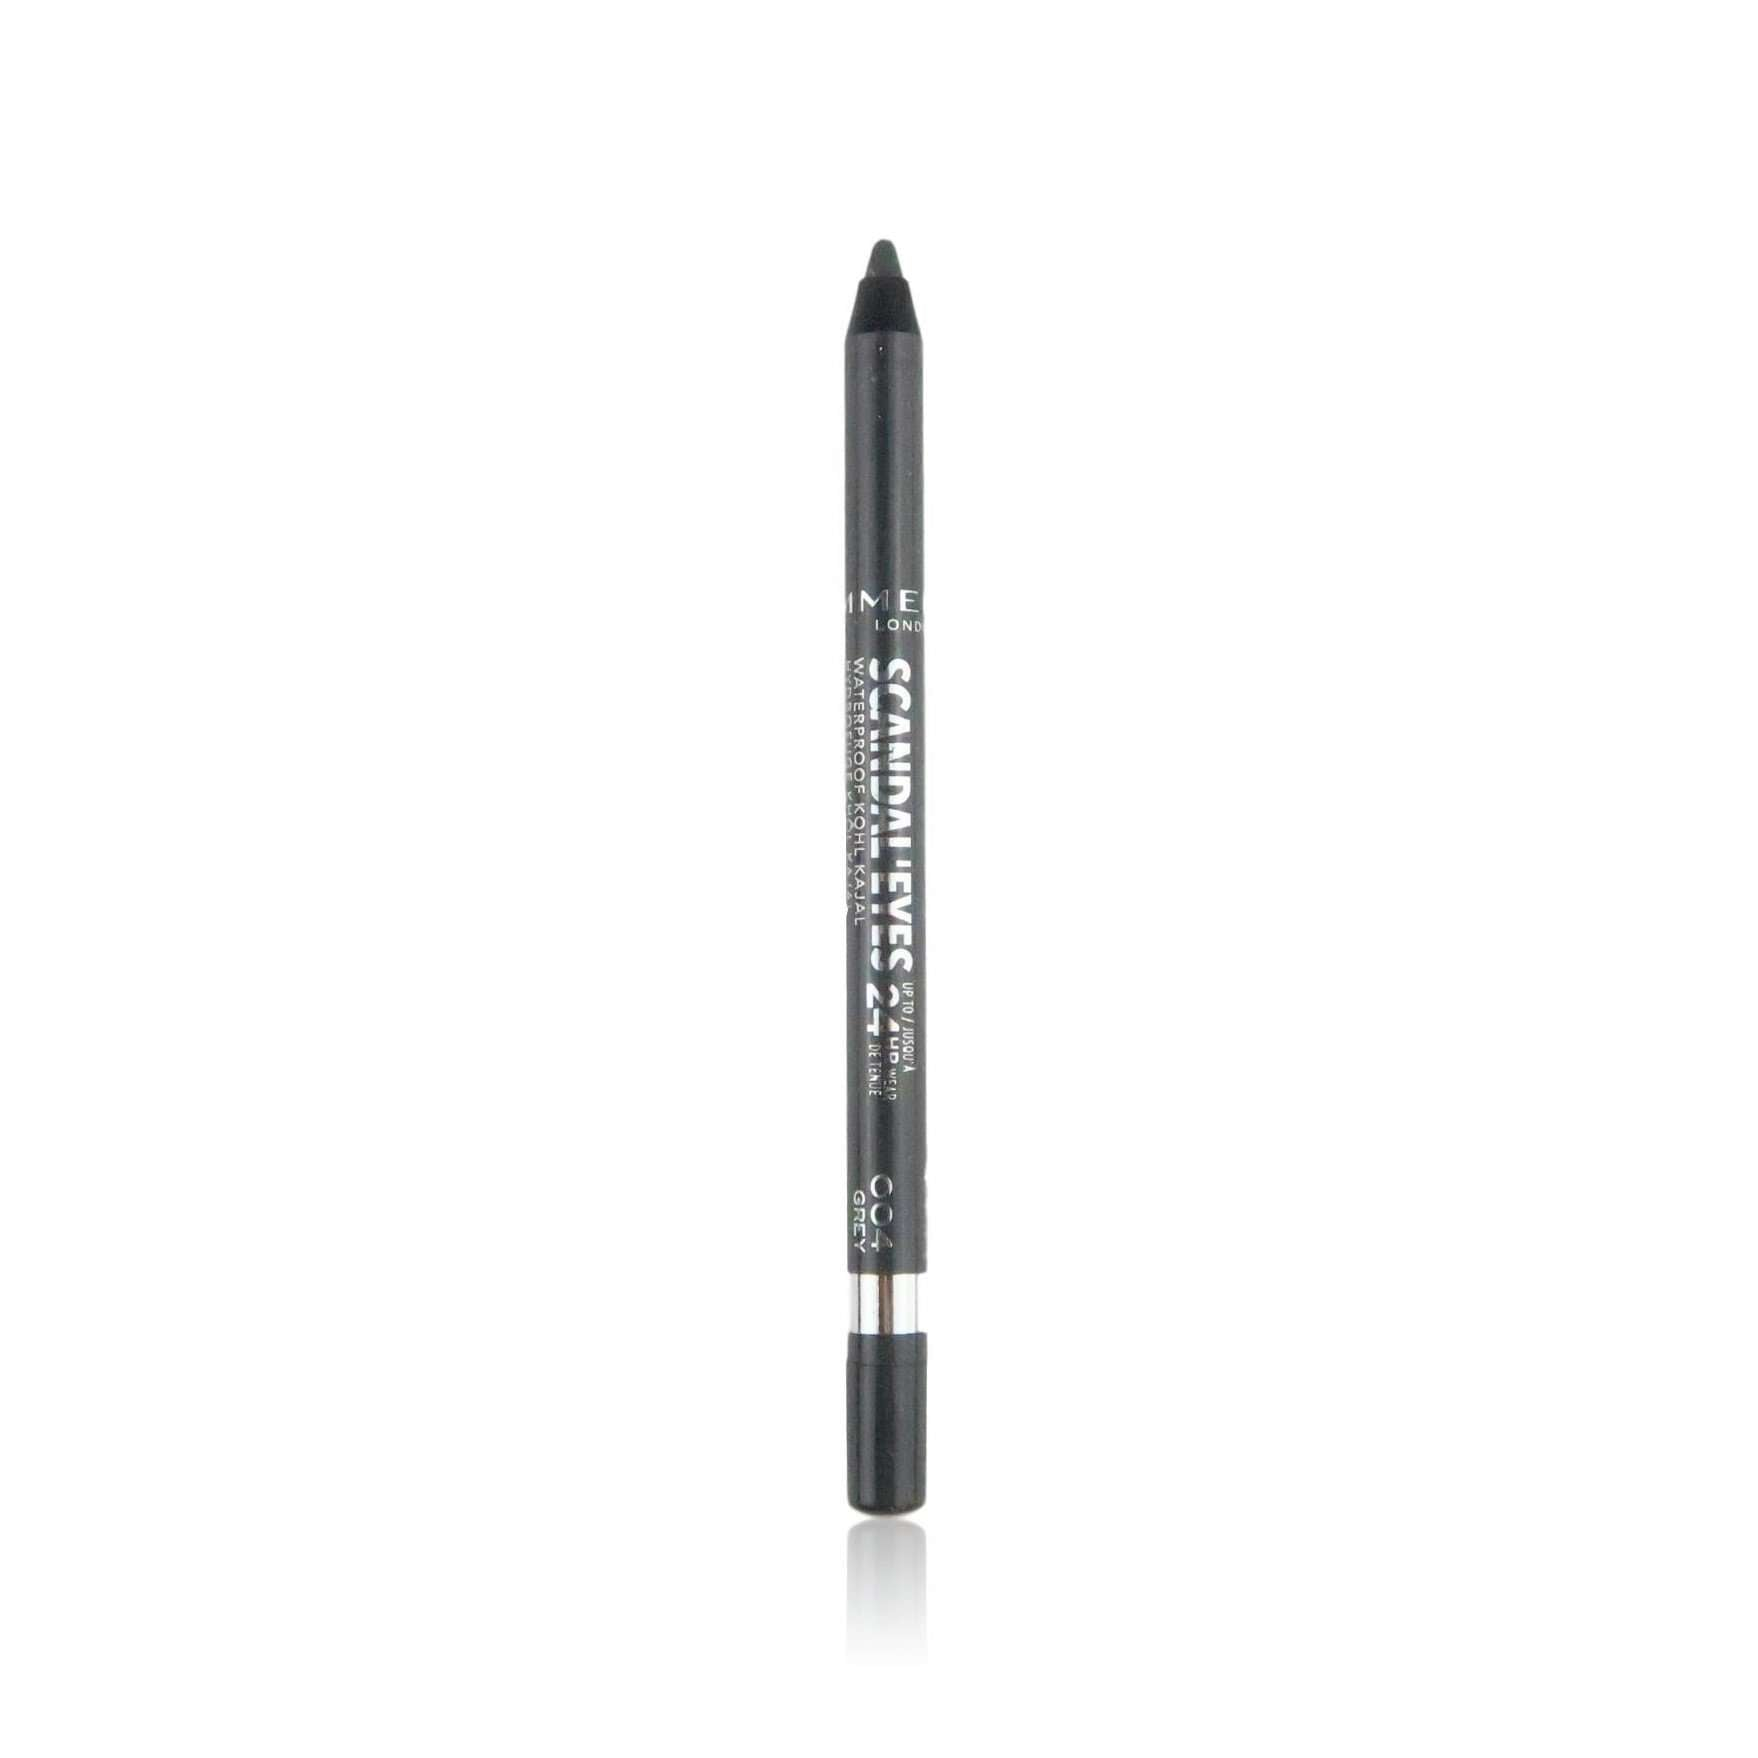 Rimmel Scandal' Eyes Waterproof Eyeliner